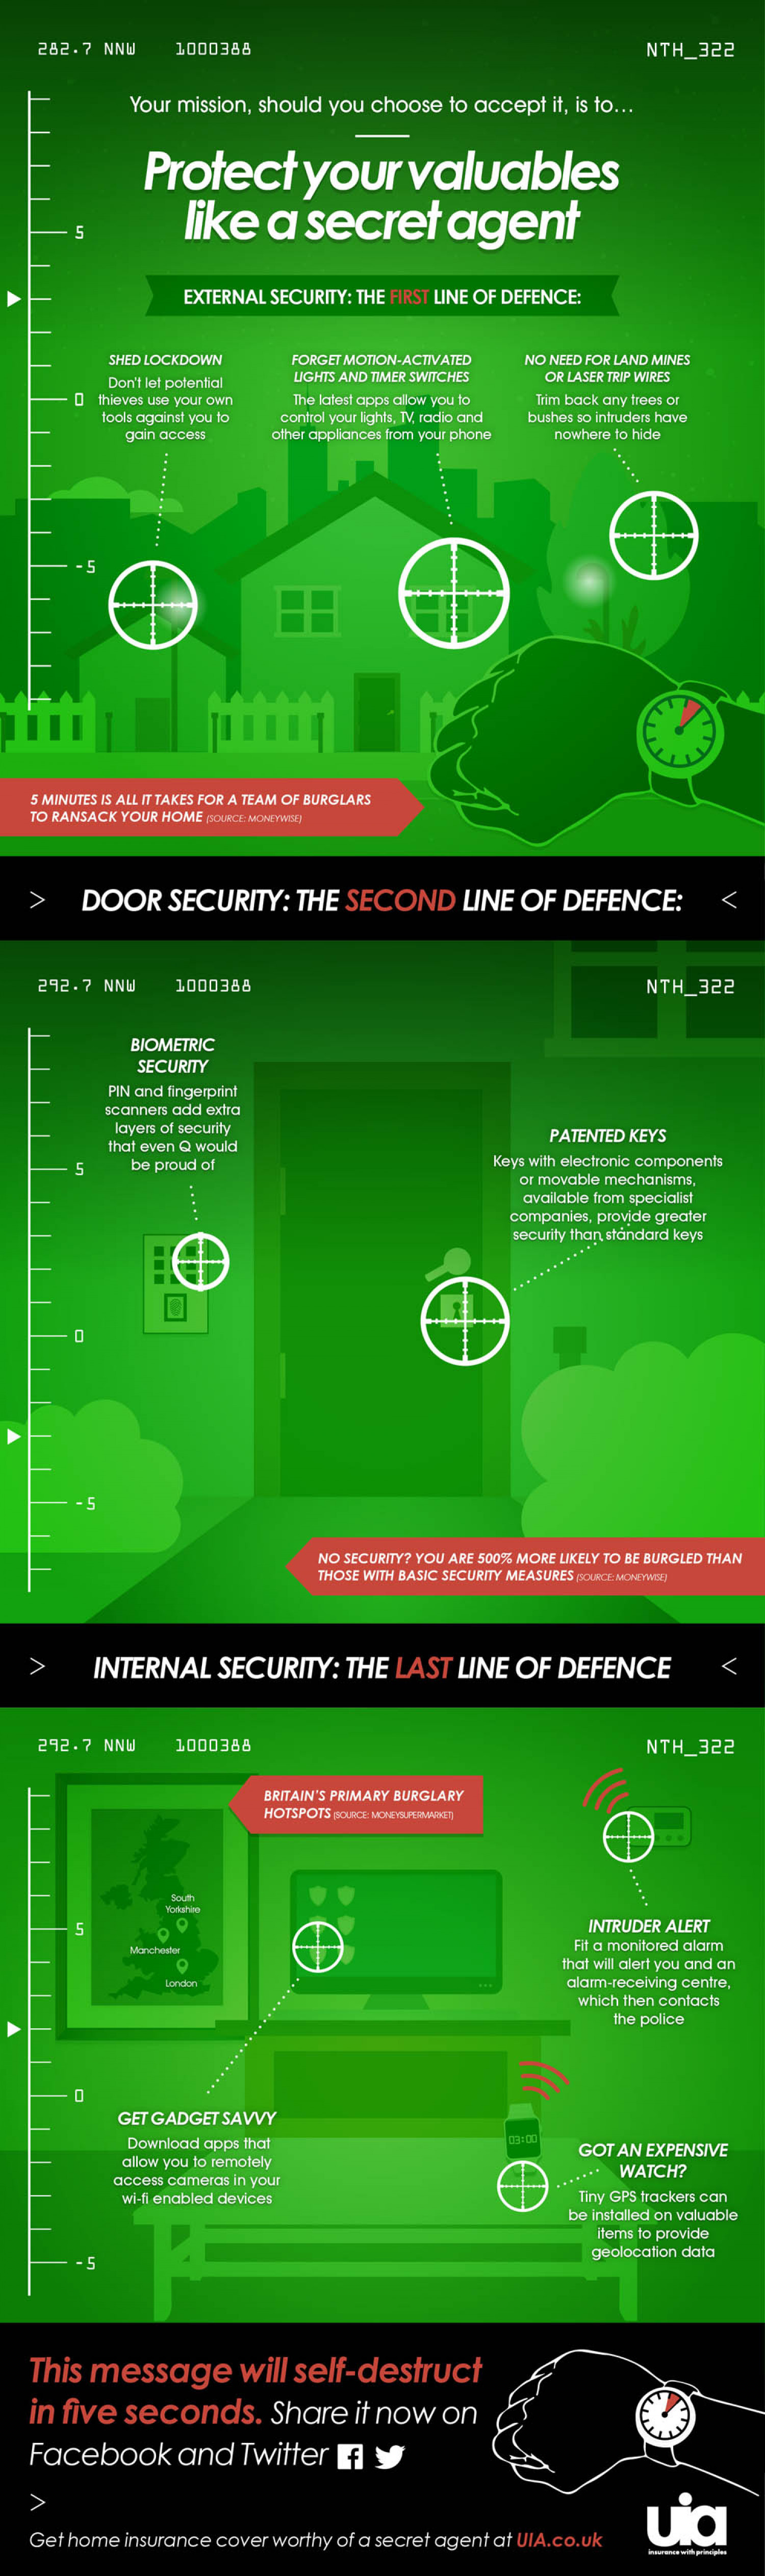 Protect Your Valuables Infographic